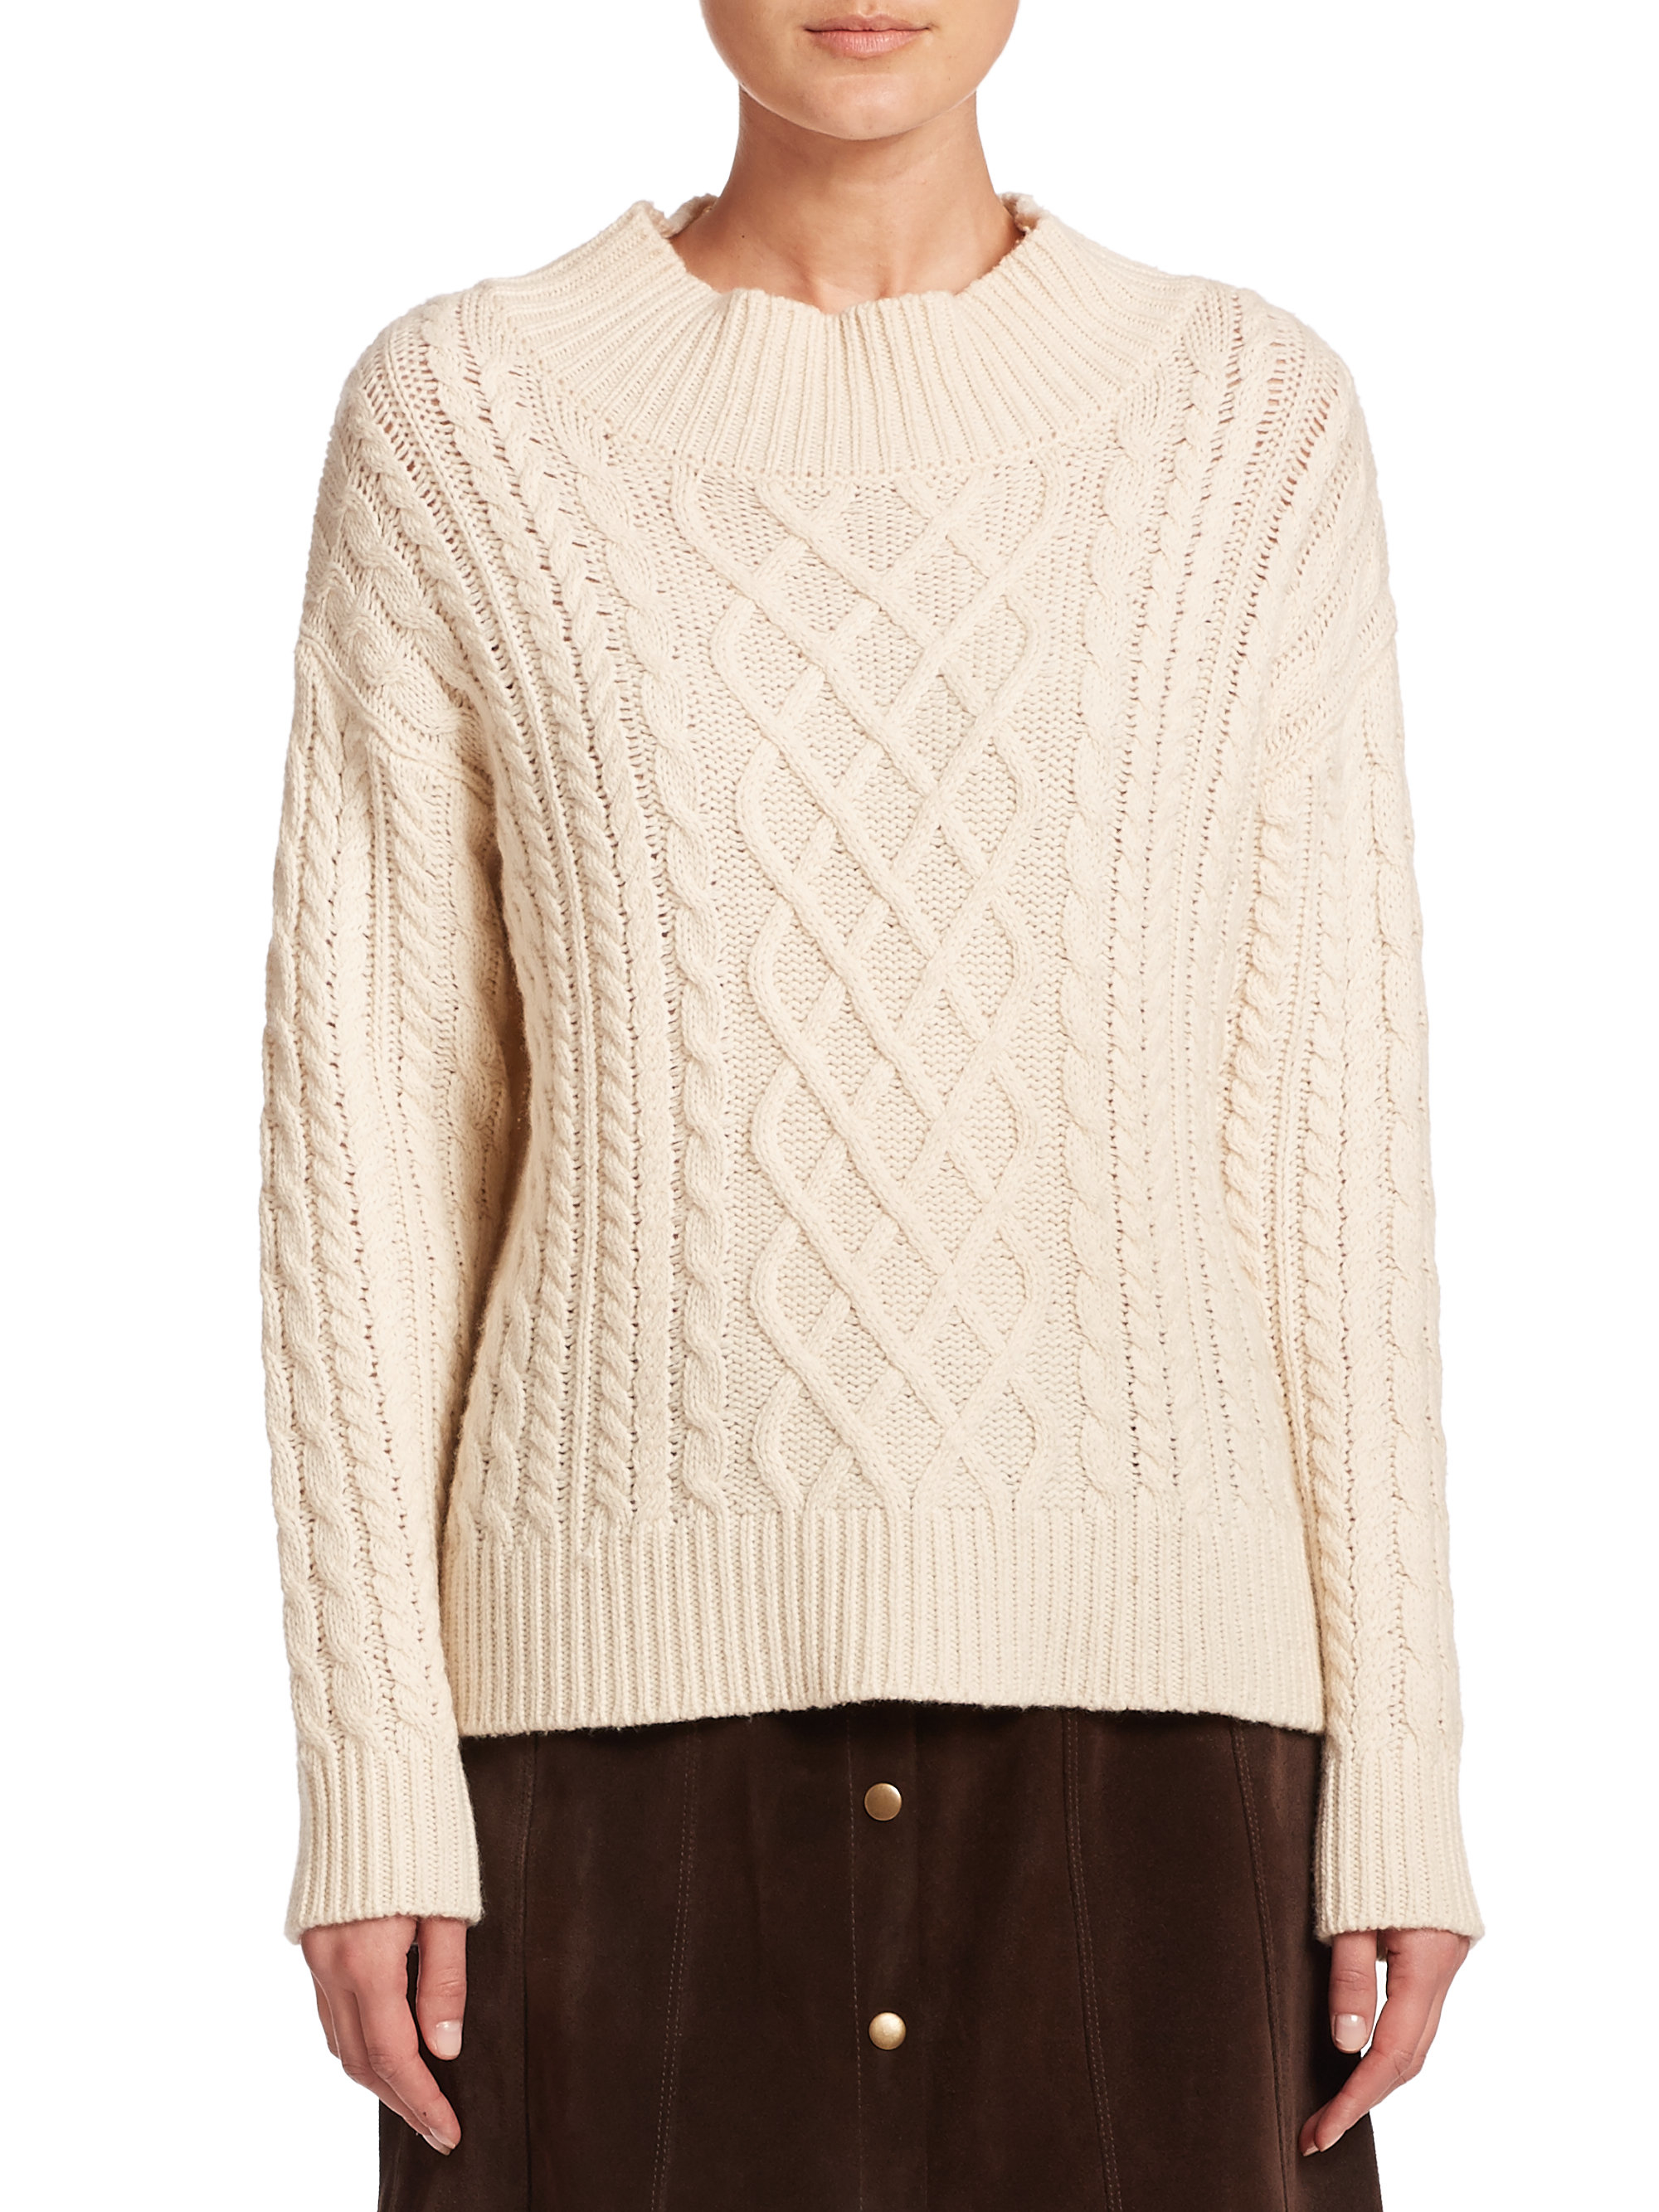 Frame Cable-knit Wool-blend Sweater in Natural | Lyst